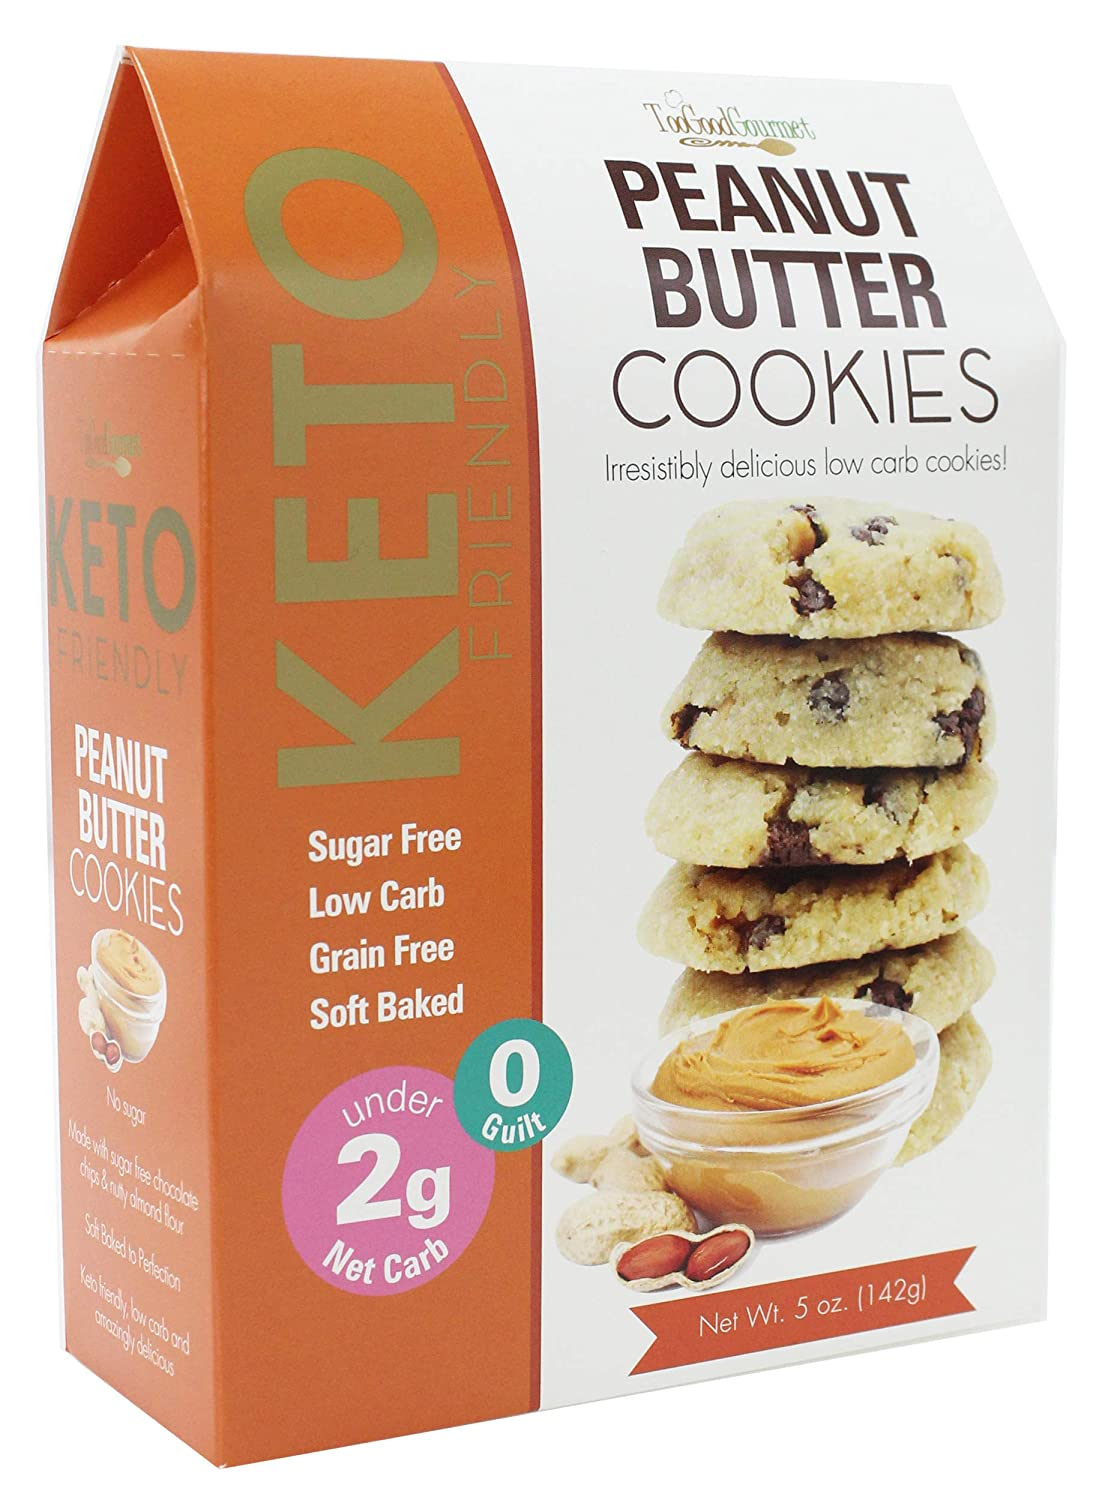 Too Good Gourmet Keto Cookies, Soft-Baked Healthy Snacks, Sugar and Grain-Free Low Carb Keto Snacks, Delicious Healthy Sweets with Less Than 2g Net Carbs (Variety Pack of 3, 5oz Boxes, Peanut Butter)